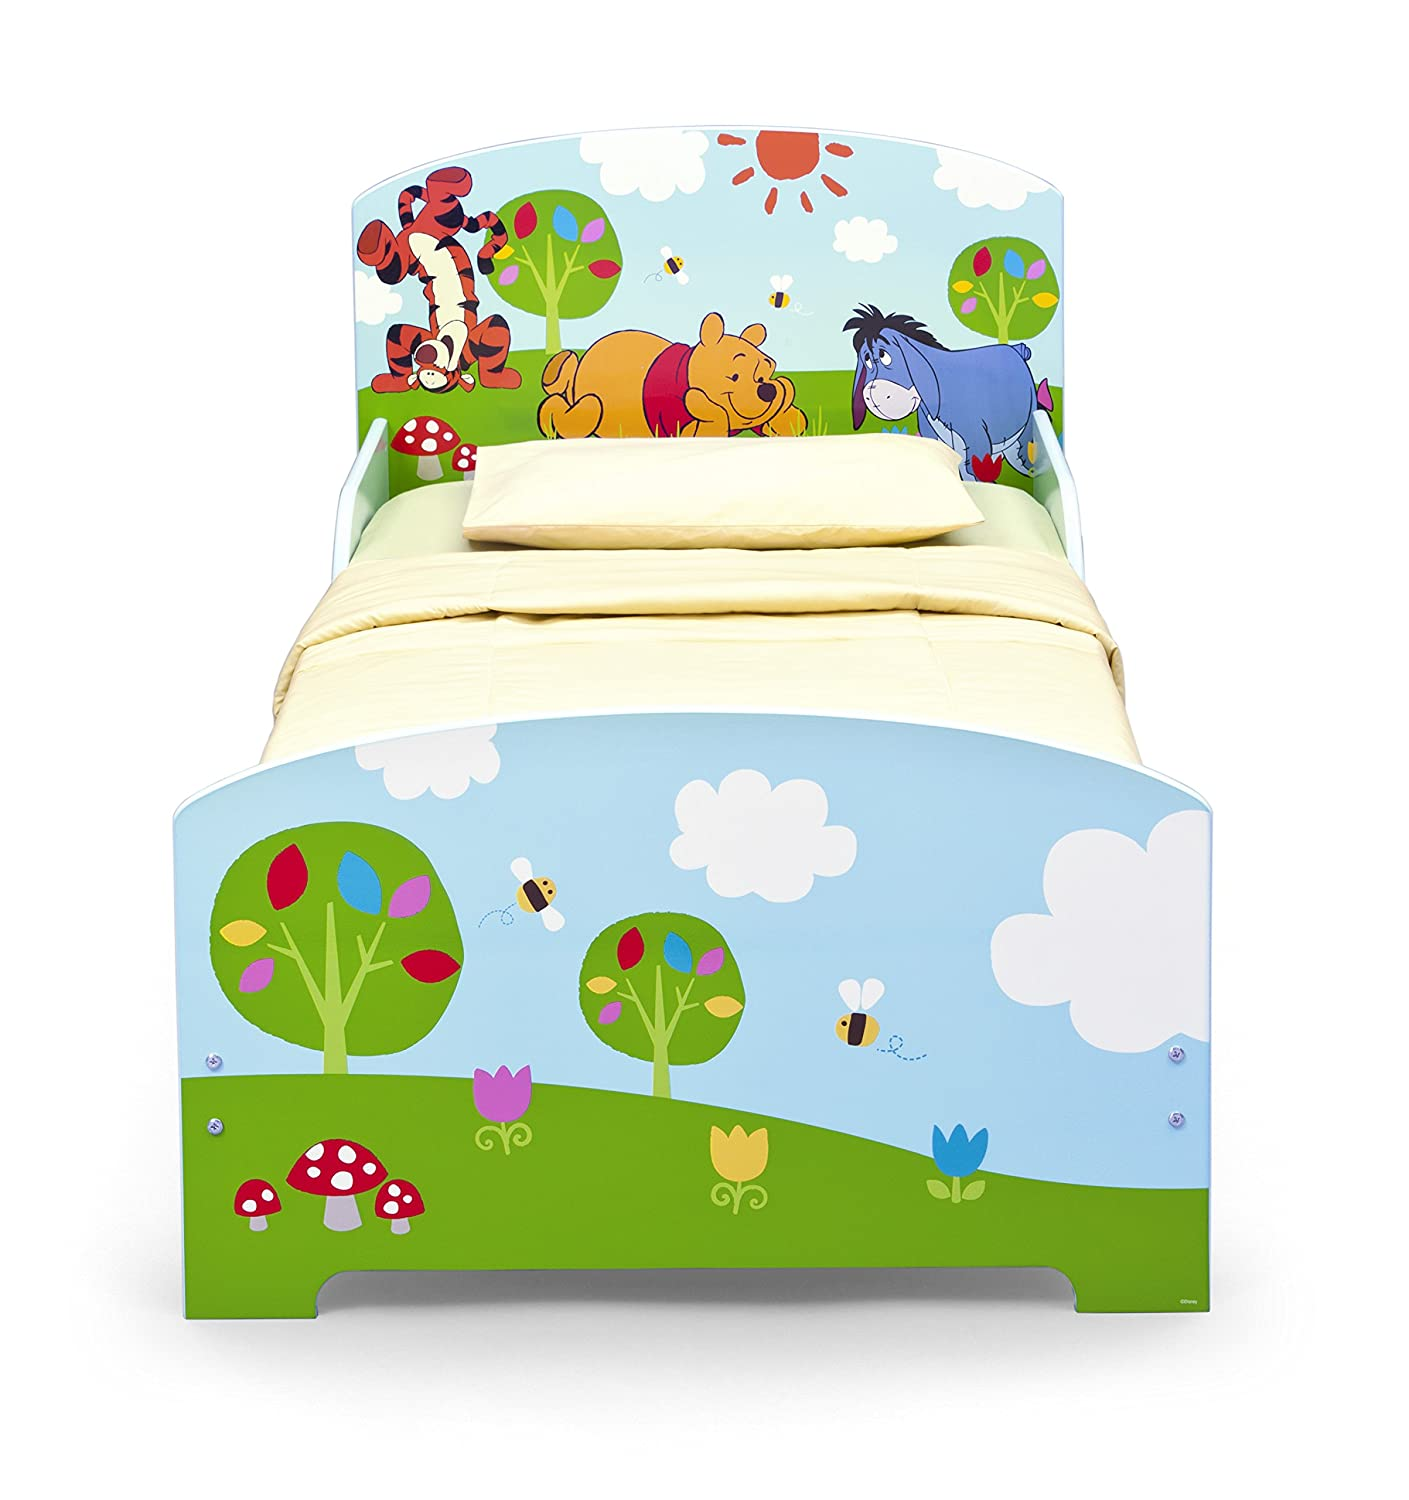 Winnie the pooh toddler bedding - Disney Winnie The Pooh Toddler Bed Blue Amazon Co Uk Kitchen Home